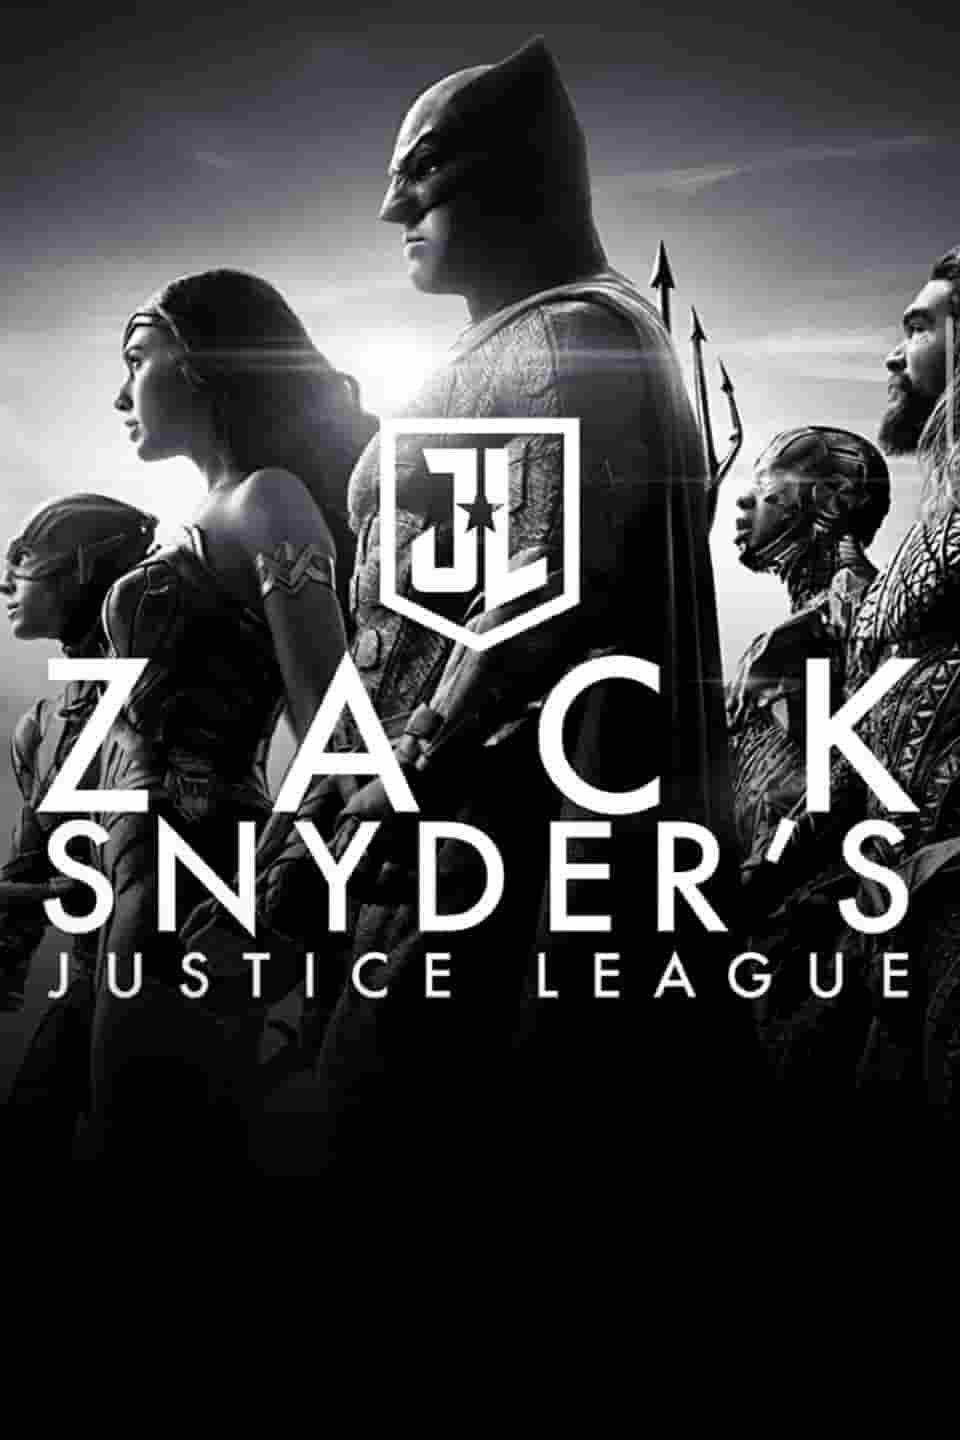 Zack Snyder's Justice League full movie download